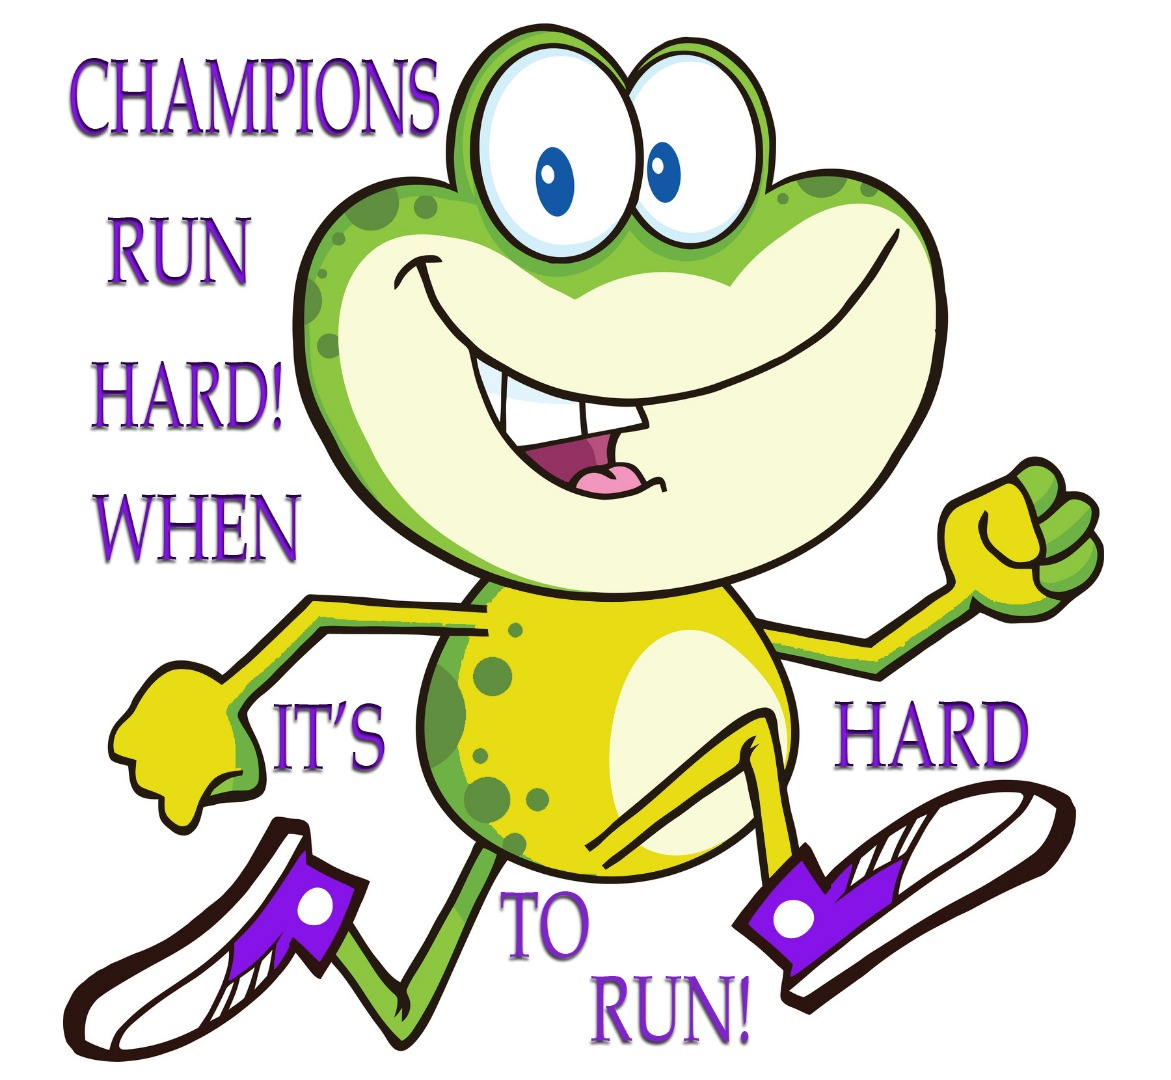 Champions run hard when it's hard to run!